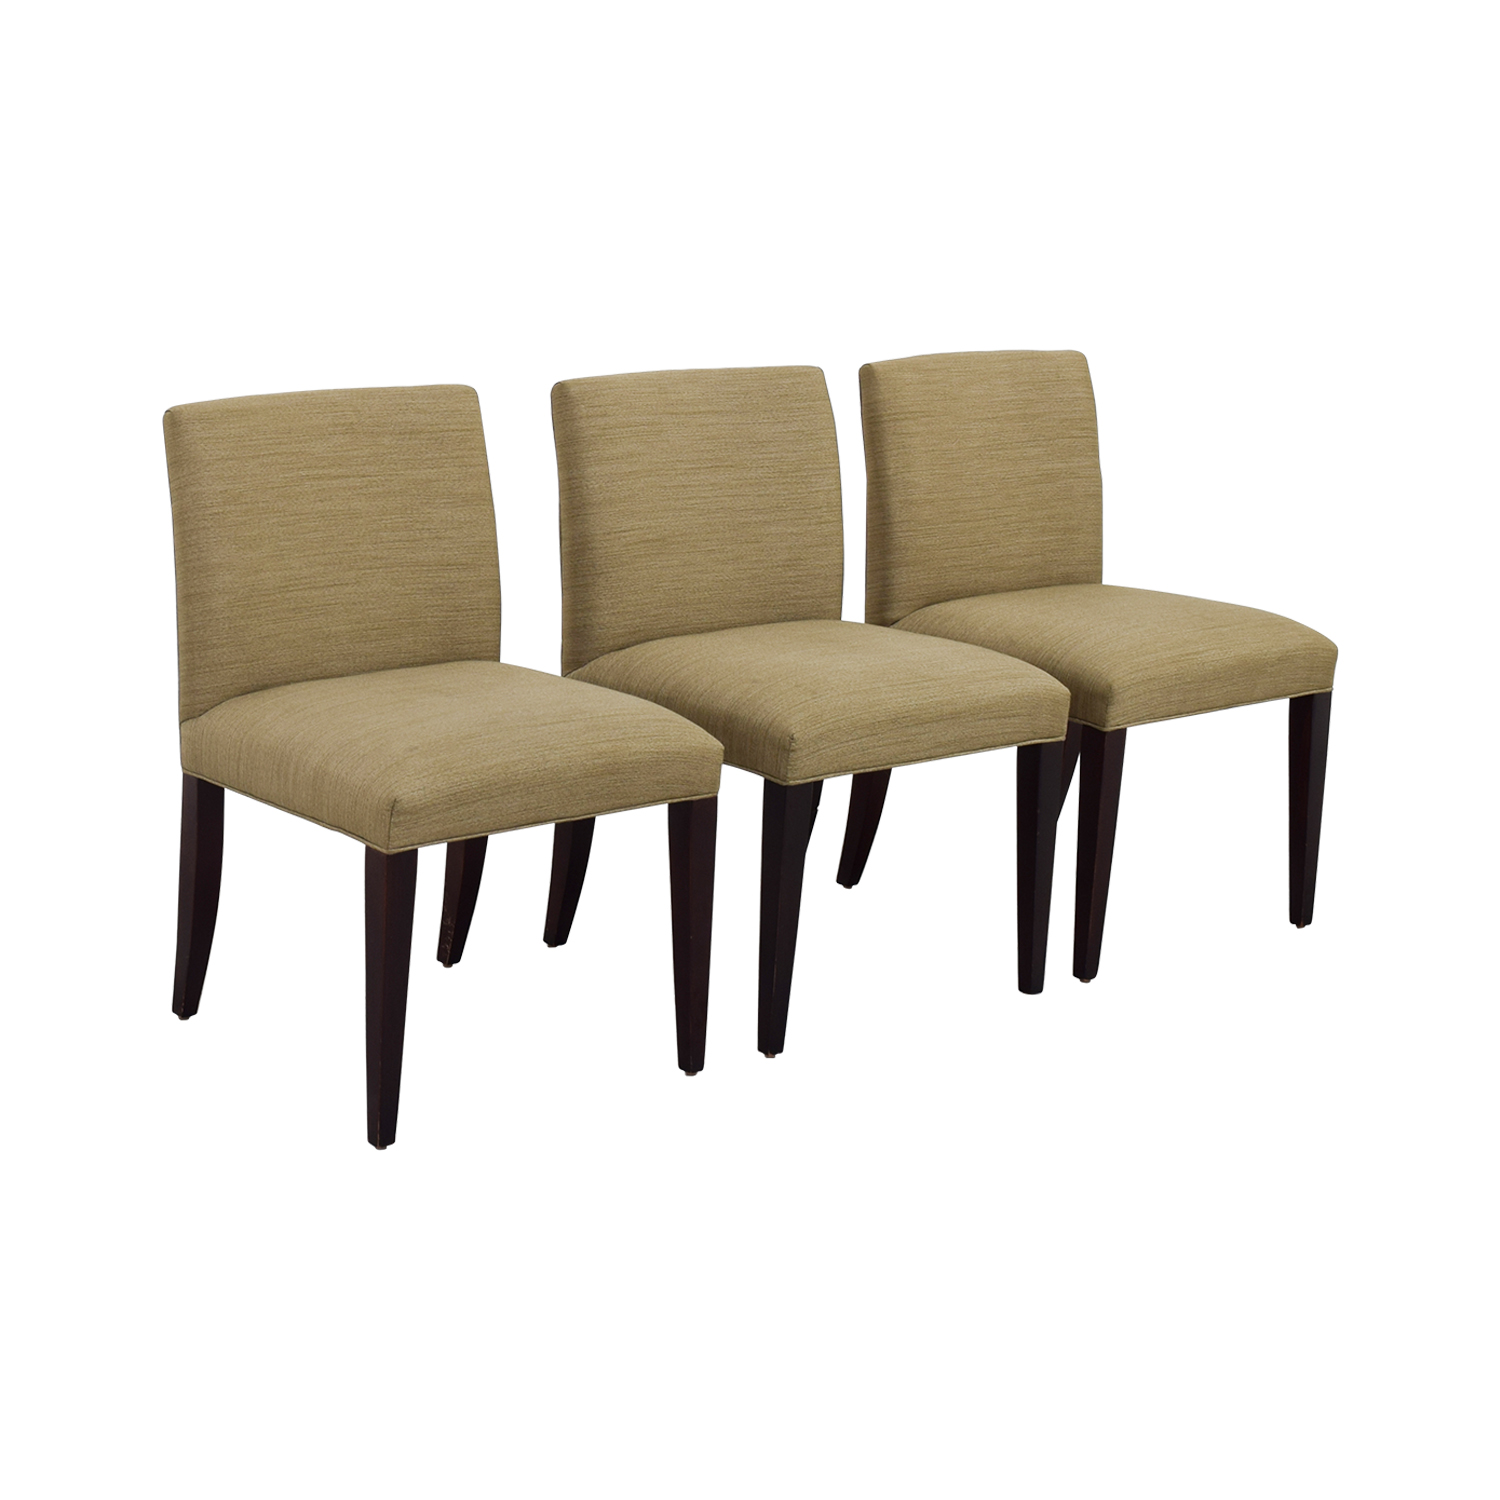 Room & Board Room & Board Marie Tan Side Chairs dimensions